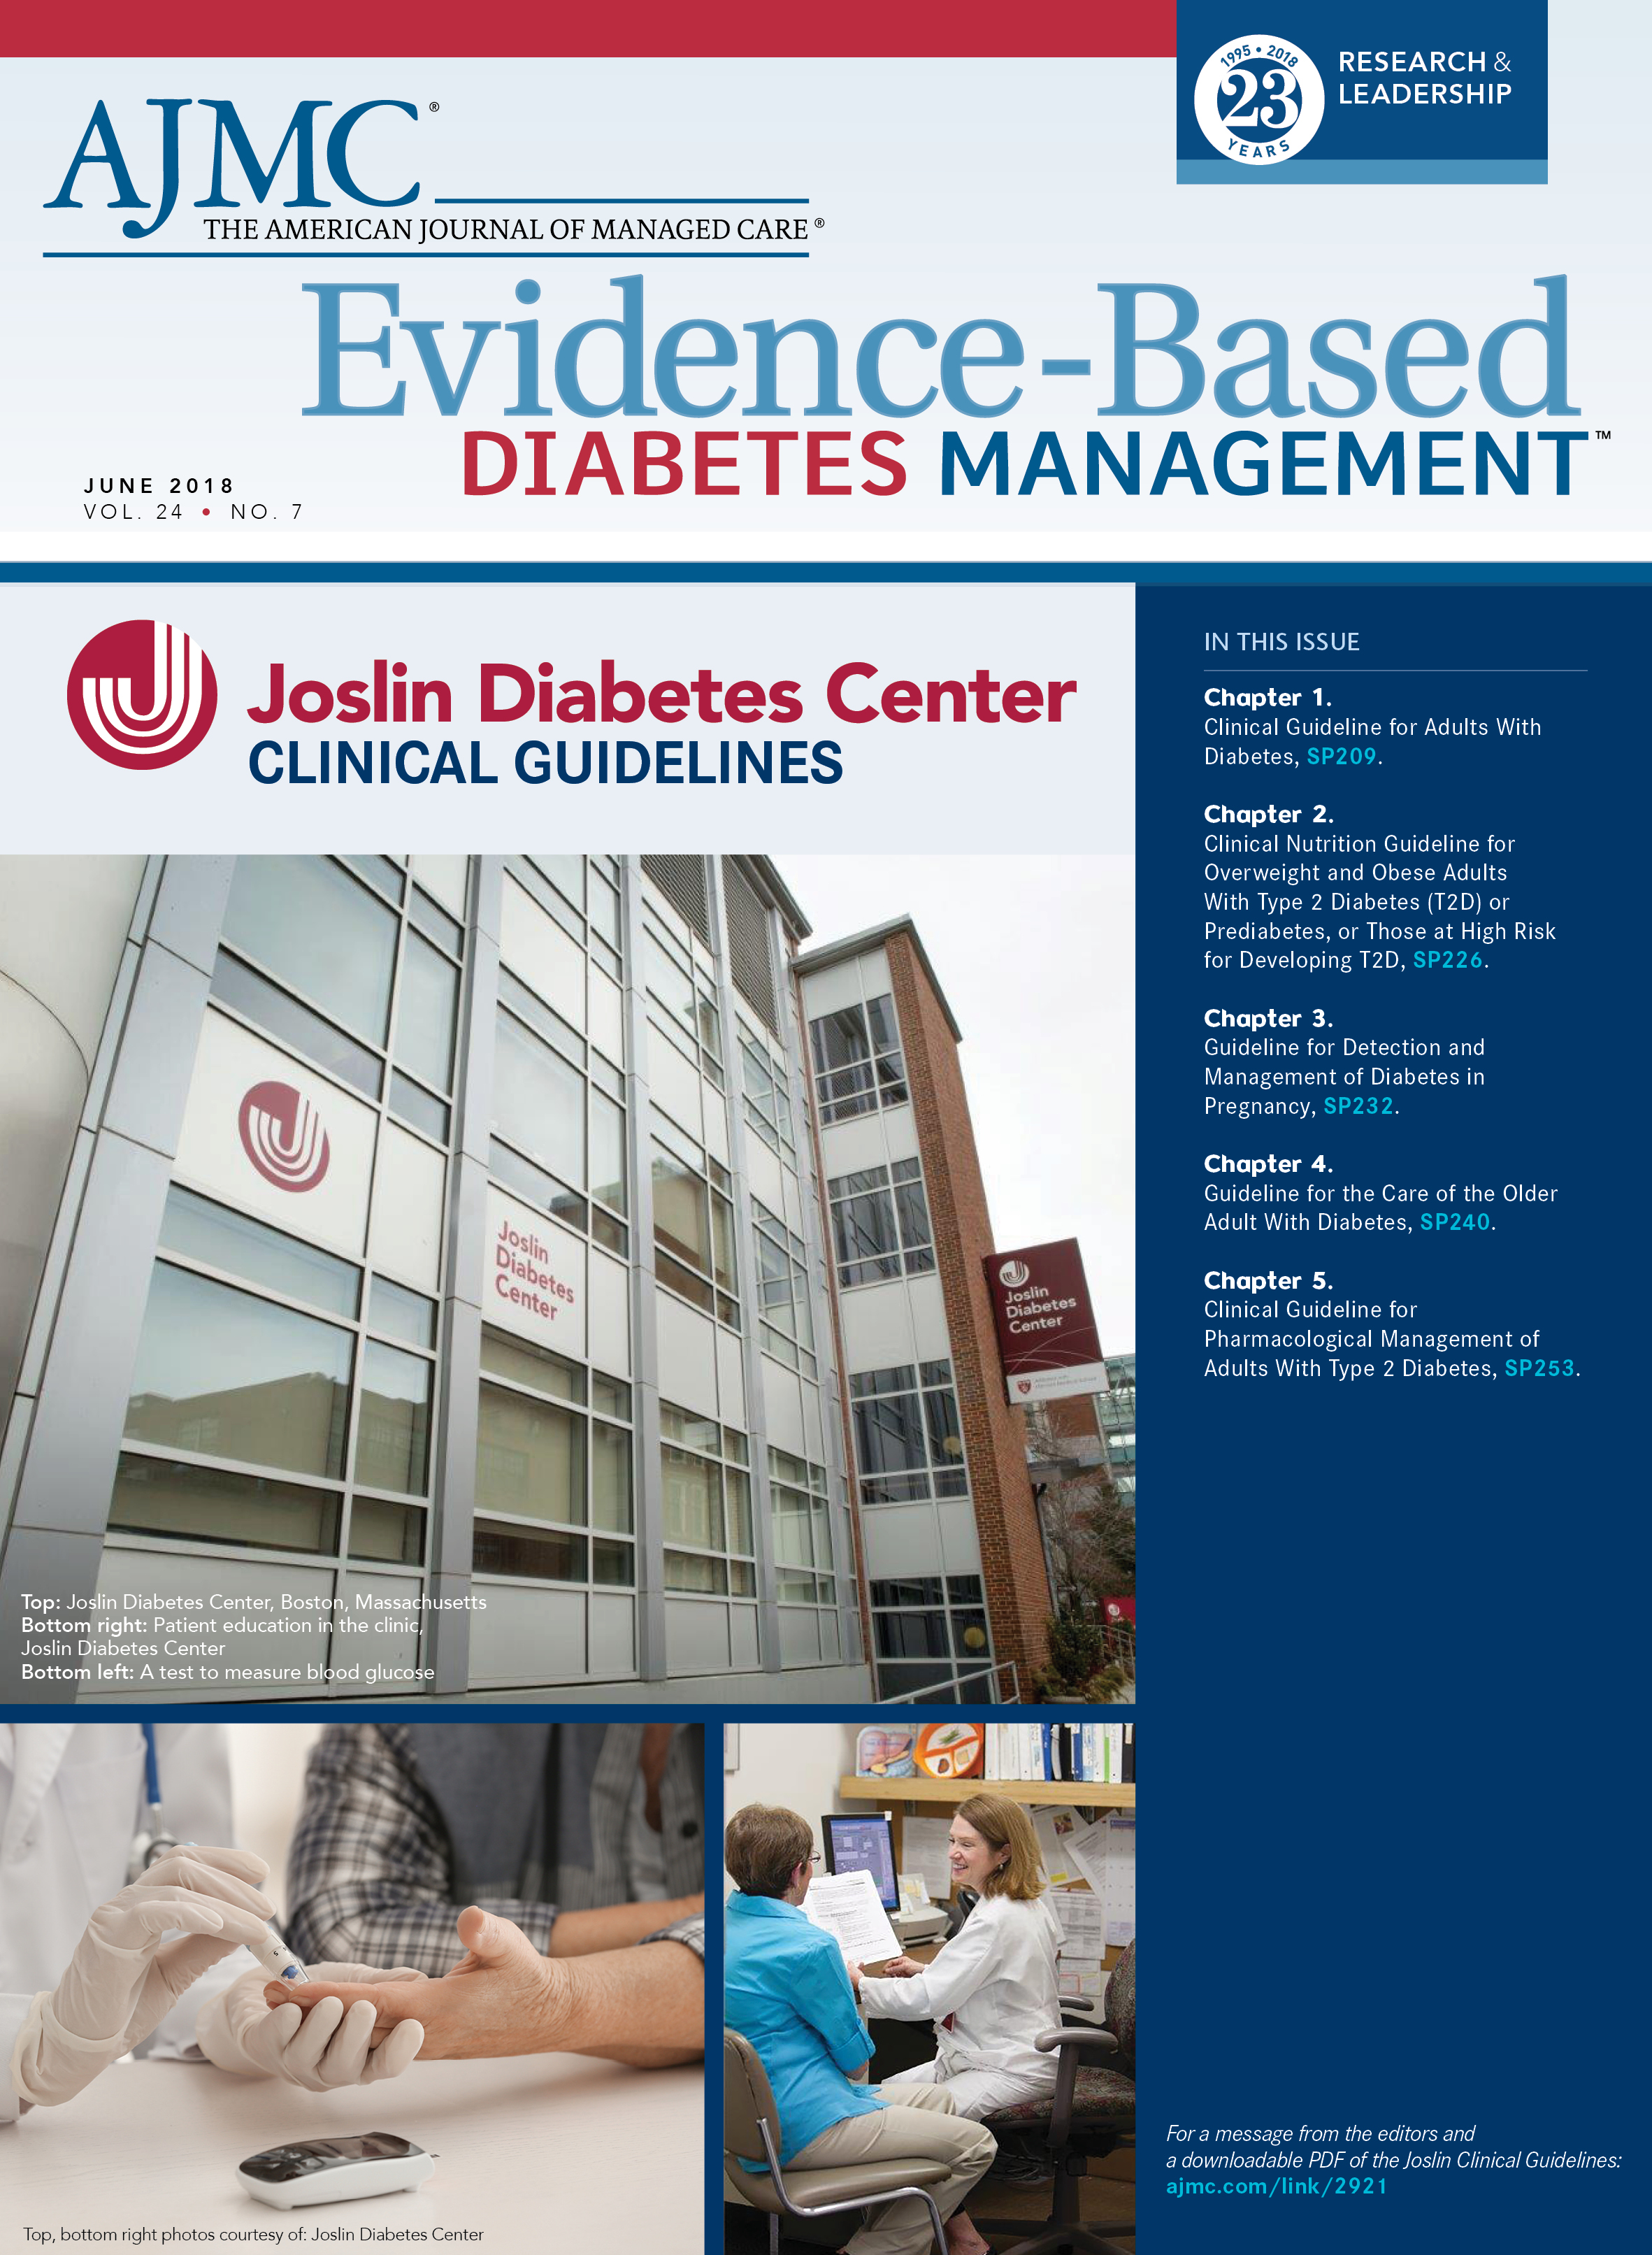 Evidence-Based Diabetes Management